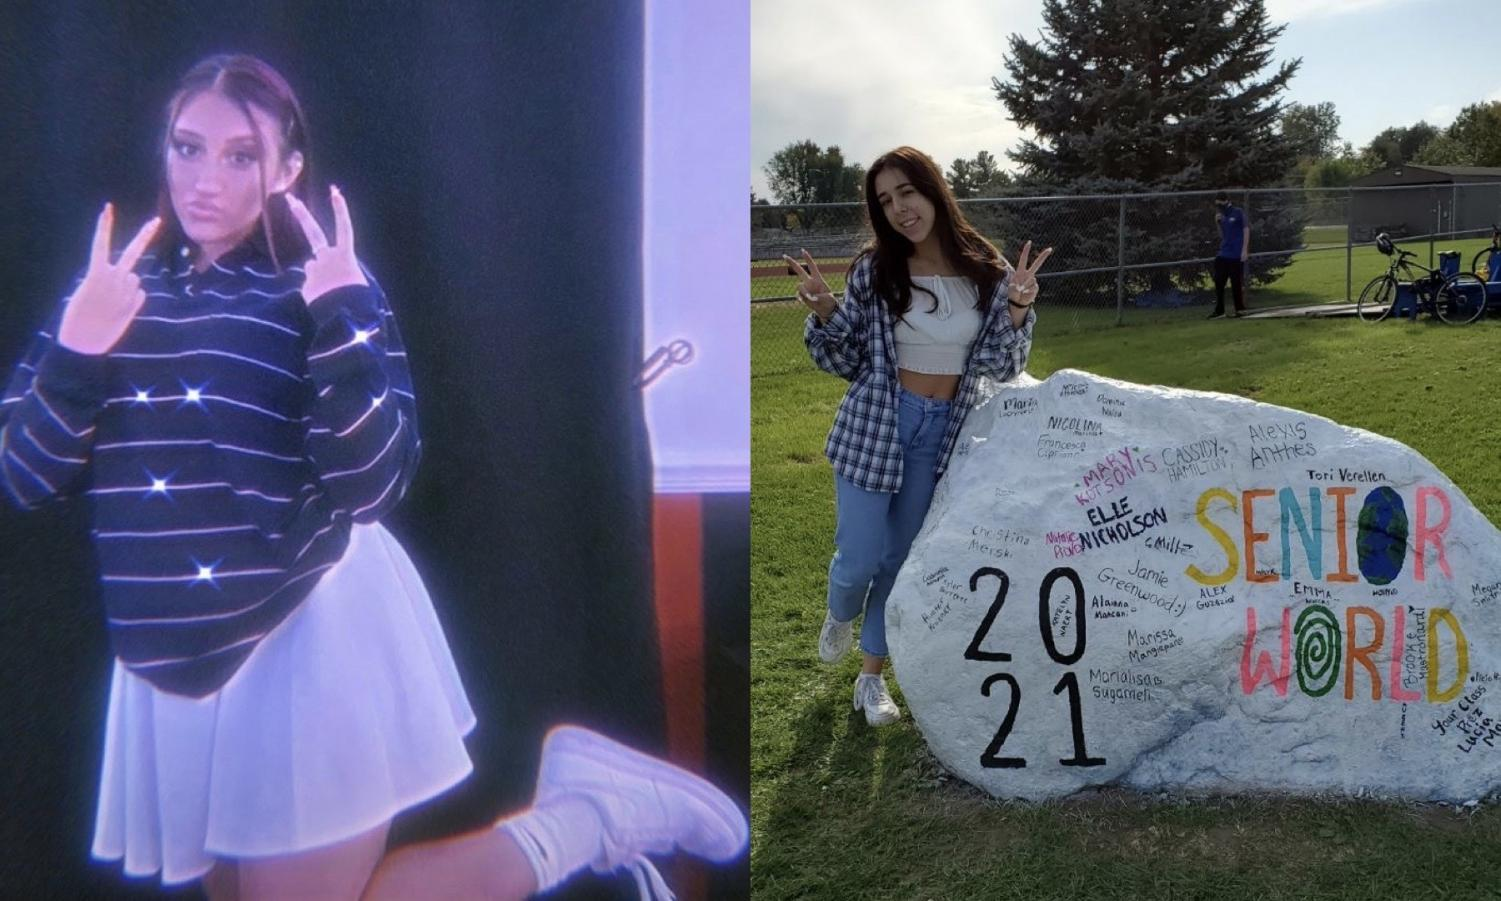 "Left: Taking a picture for Instagram, senior Jaden Potance shows off a thrifted long-sleeve polo and tennis skirt. ""I thrift because it's cheap and instead of spending a lot of money on buying new clothes and putting these clothes to waste, you can just upcycle the old clothes,"" Potance said. On Instagram, her followers had no clue that she bought her styles secondhand.  Right: Wearing a thrifted flannel, senior Shealee King signs the senior rock. ""I like thrifting because it's an easy way to get clothes that match my style without having to spend a lot of money. It's also a great alternative to fast fashion, as it's sustainable,"" King said. As a retail worker, King appreciates the option of a lower priced, eco-friendly clothing source."